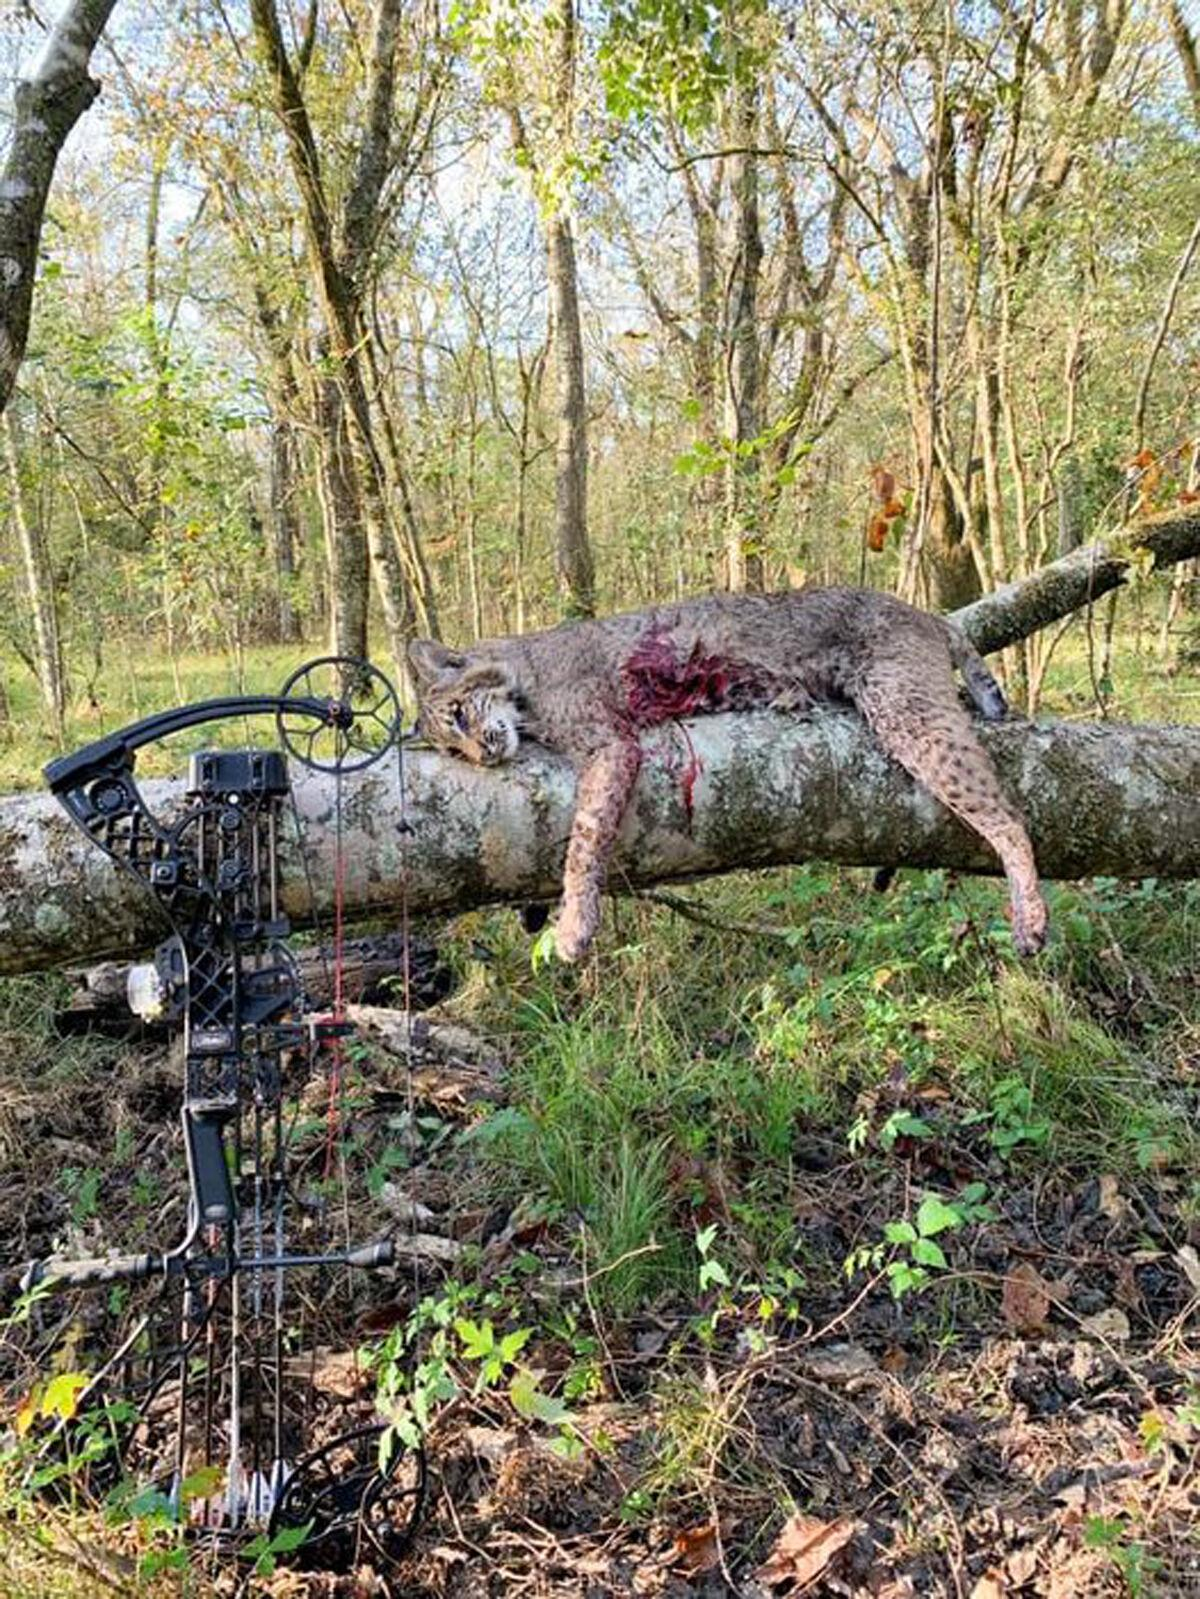 Theriot, 19, draws, fires and claims a bobcat kill on hunt near his house